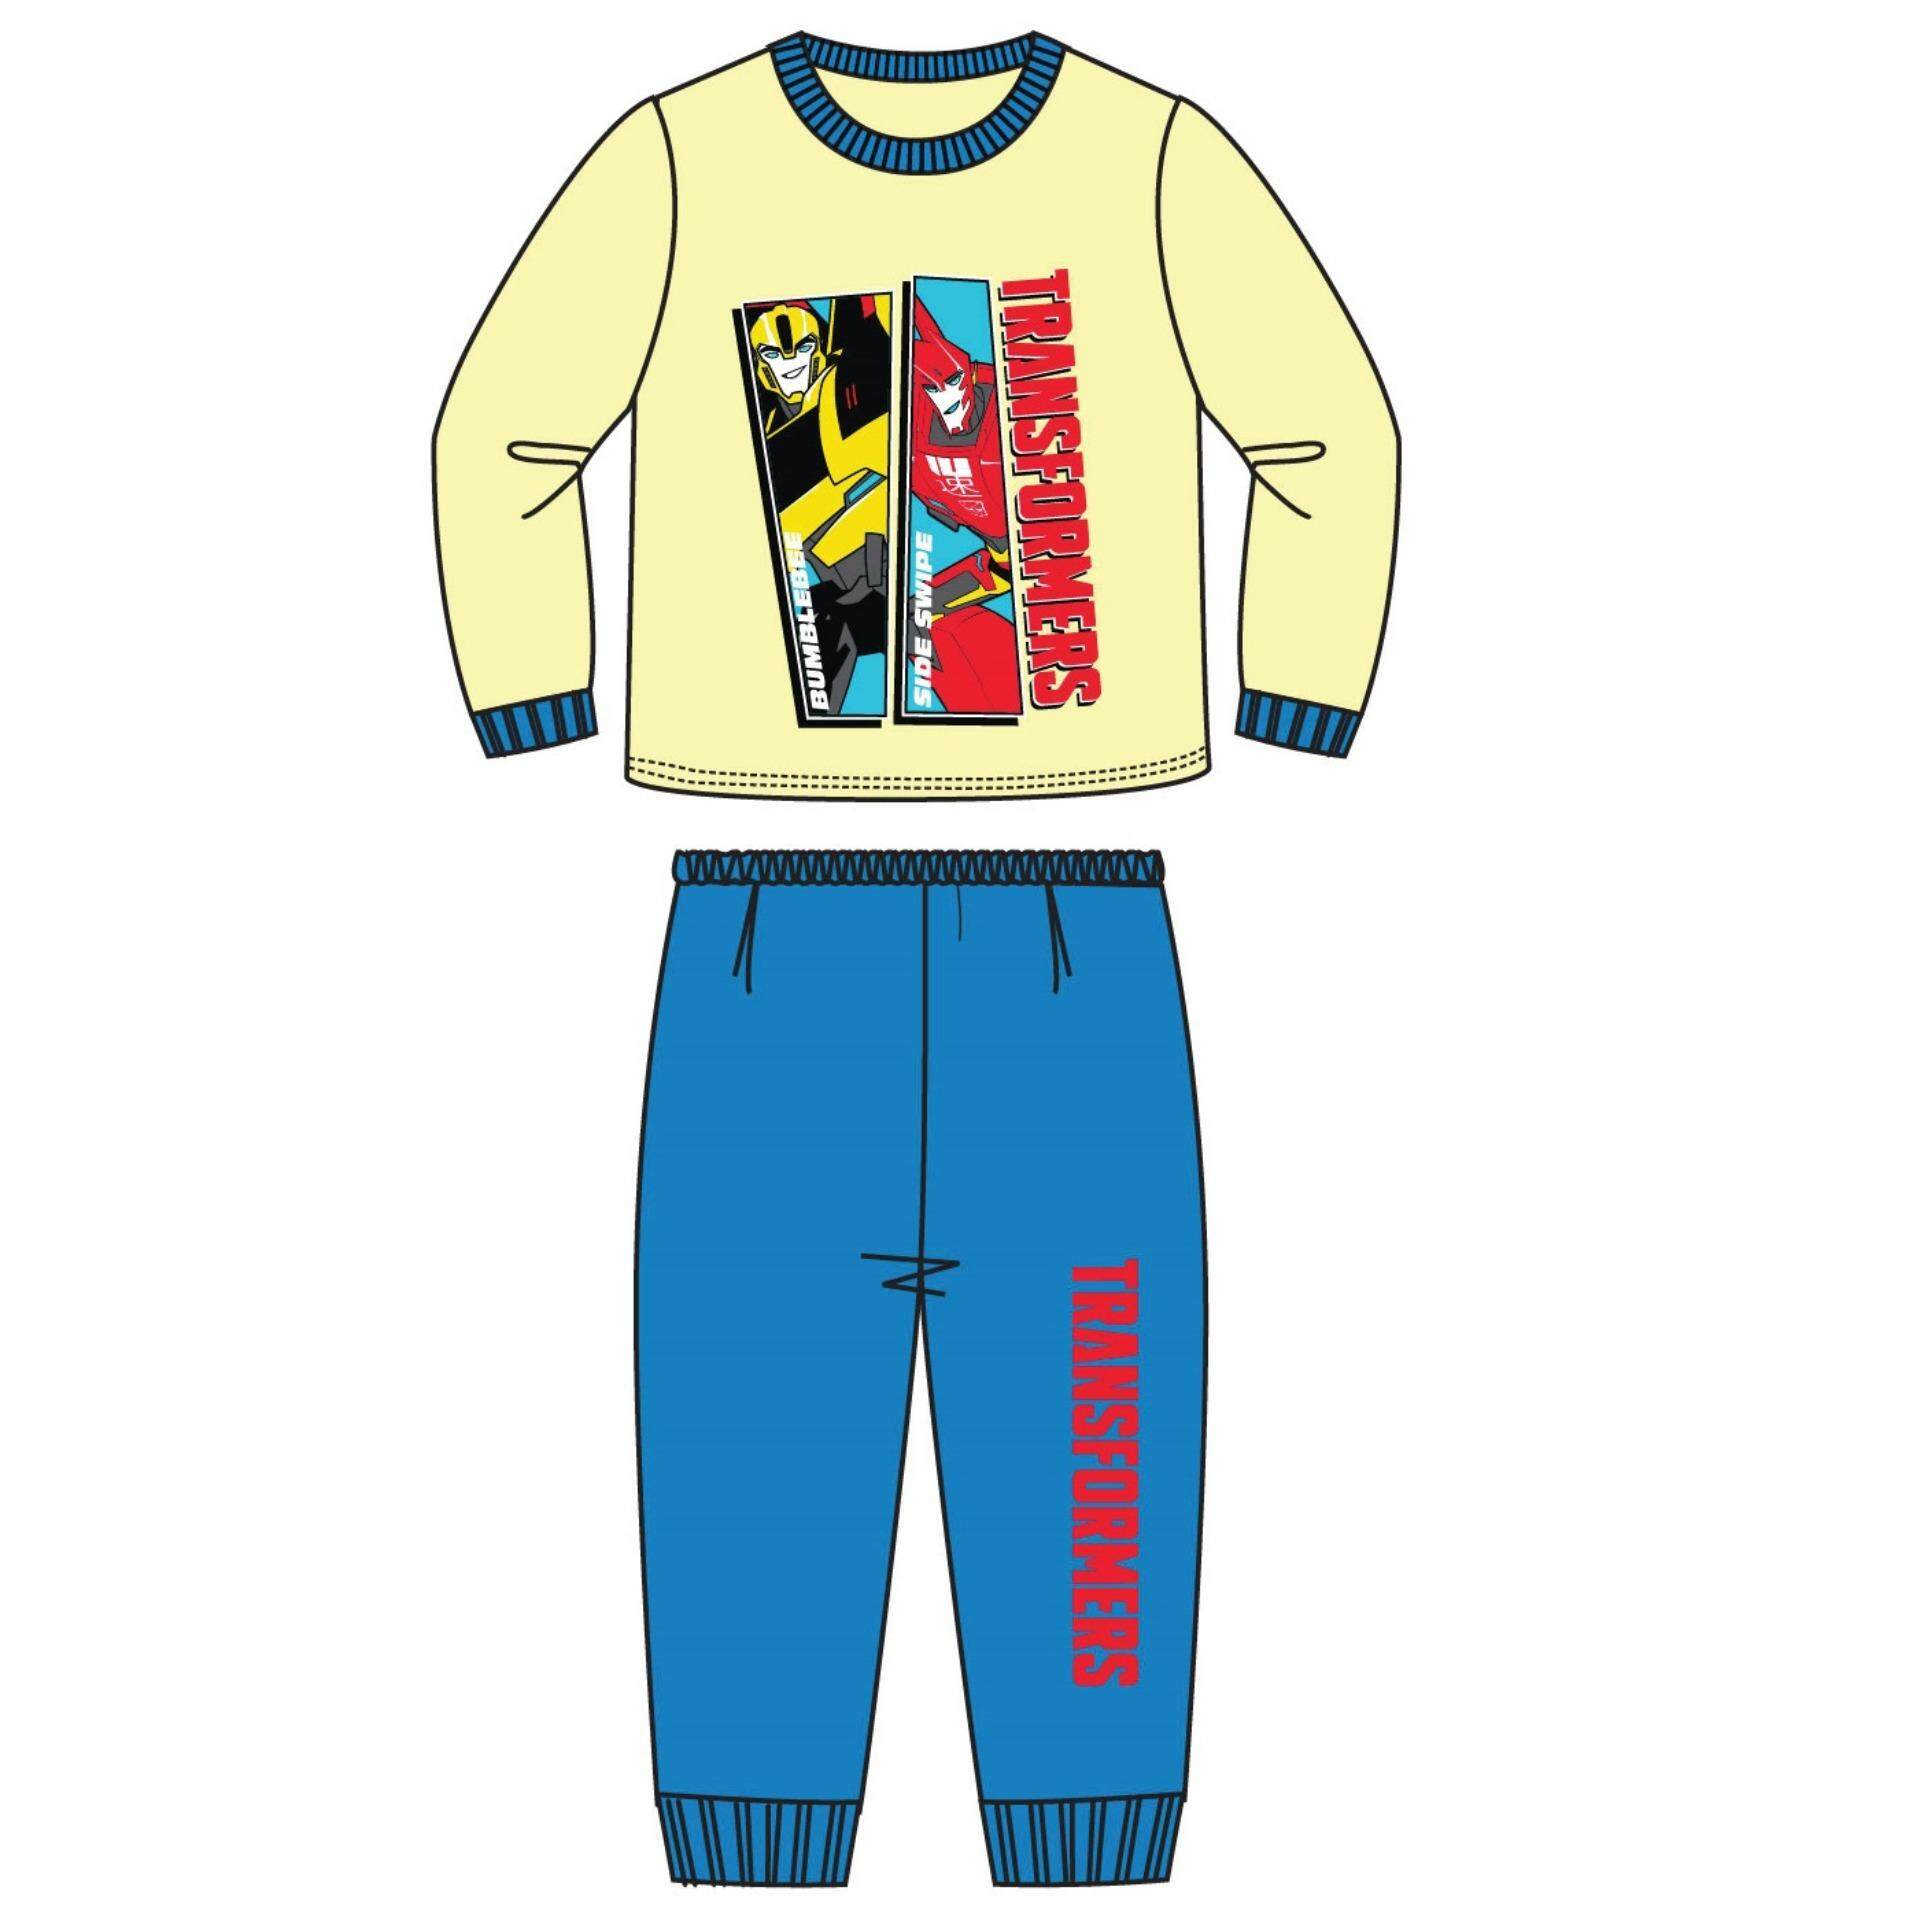 Transformers Children Kids Pajamas Homewear For Age 5yrs To 12yrs 100% Cotton - Yellow Blue